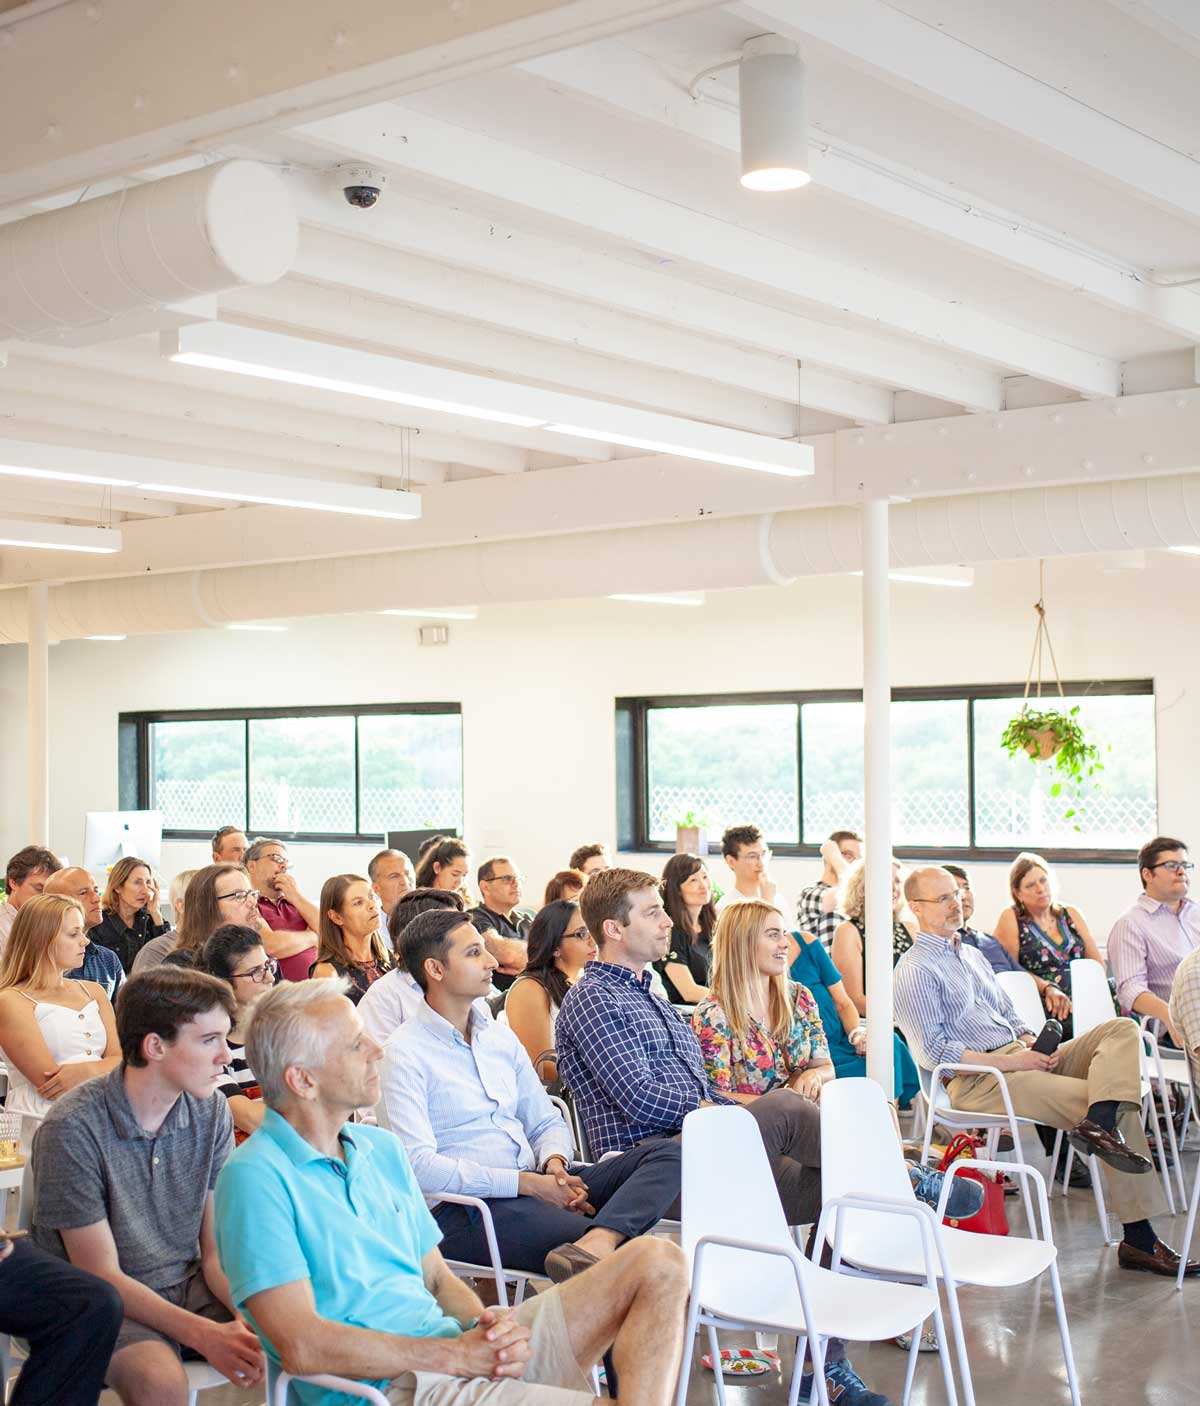 group of adults sitting in chairs during an event at a coworking space